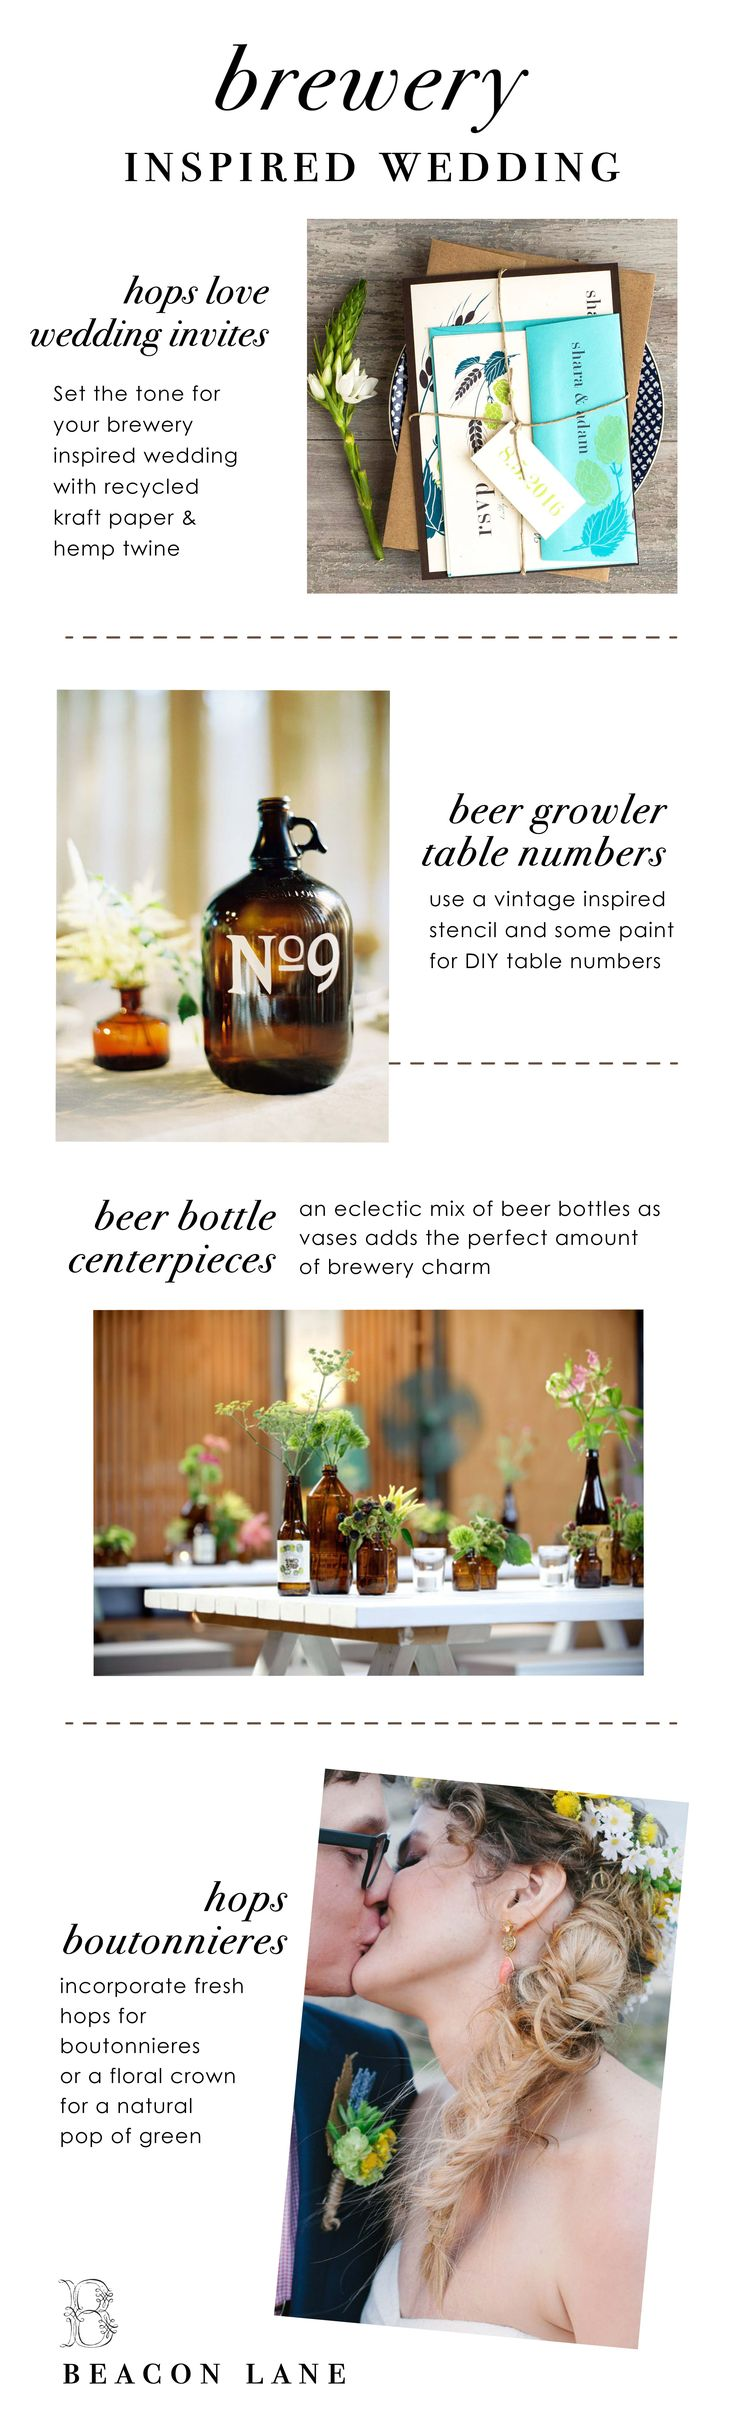 Beer Inspired, Brewery Wedding.Follow below link for the entire #HopsLove collection: http://www.beaconln.com/?s=hops+love&post_type=product (Beer Bottle Centerpieces)